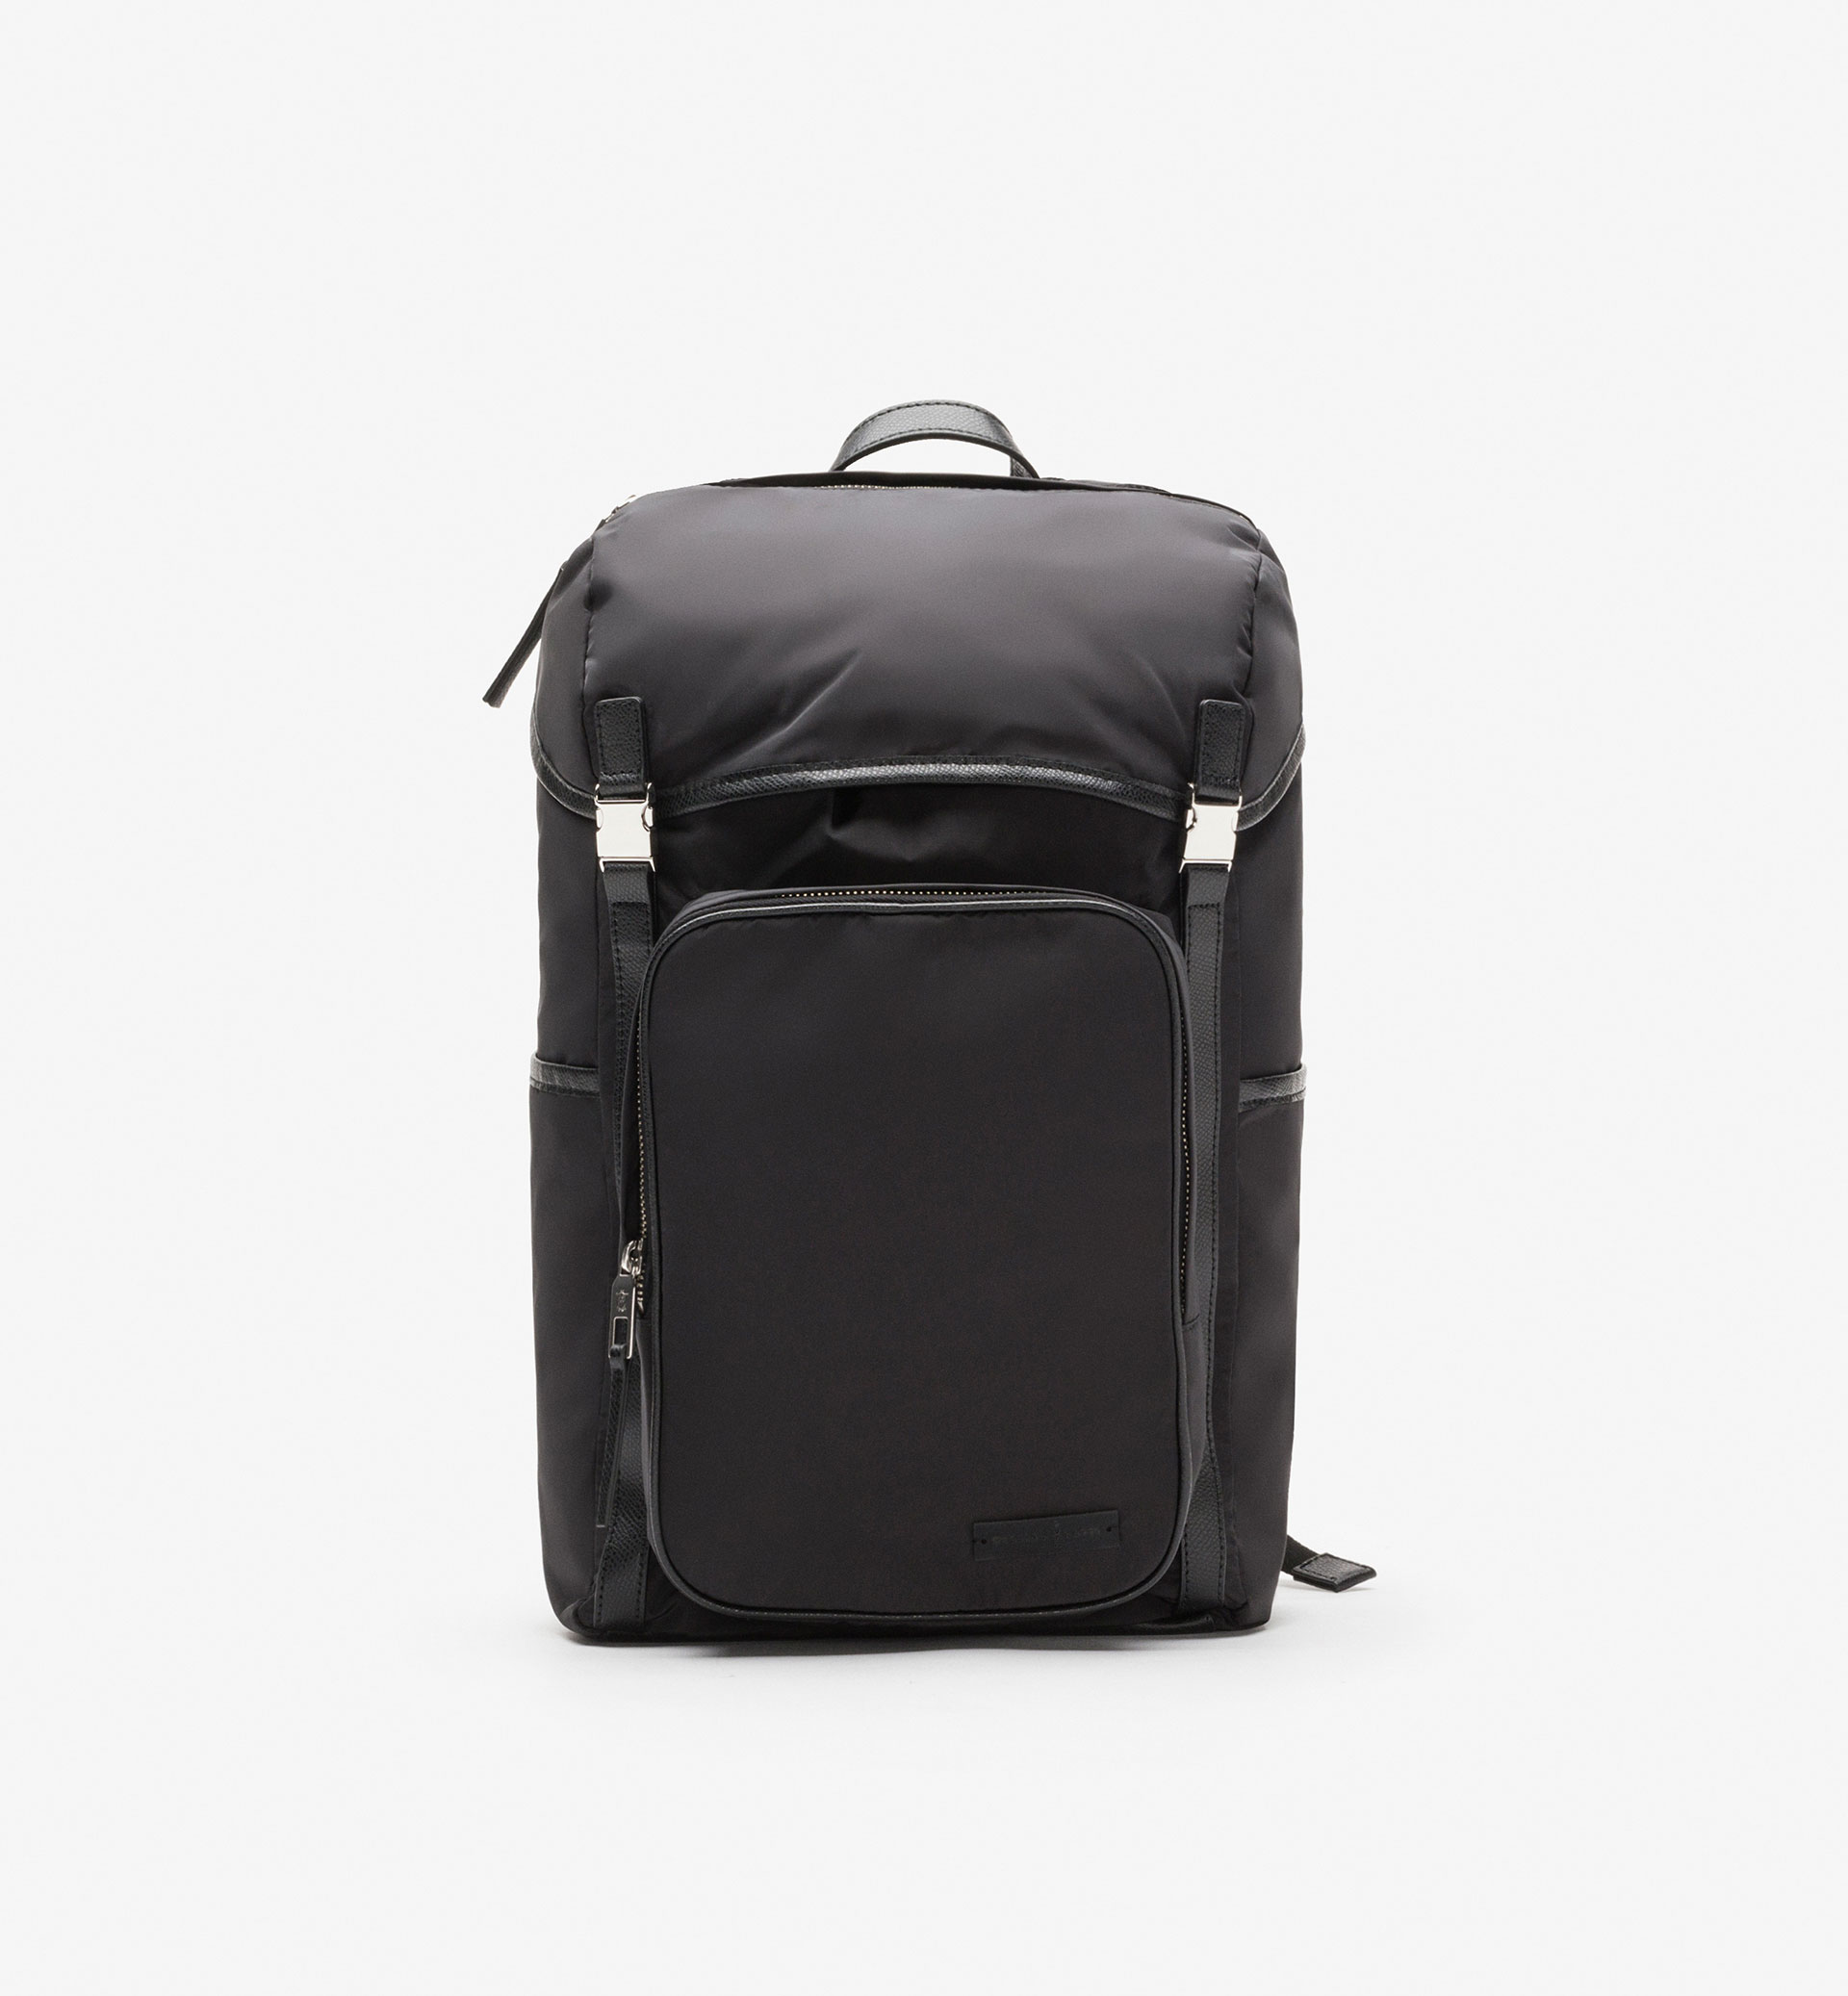 SOFT SAFFIANO BACKPACK